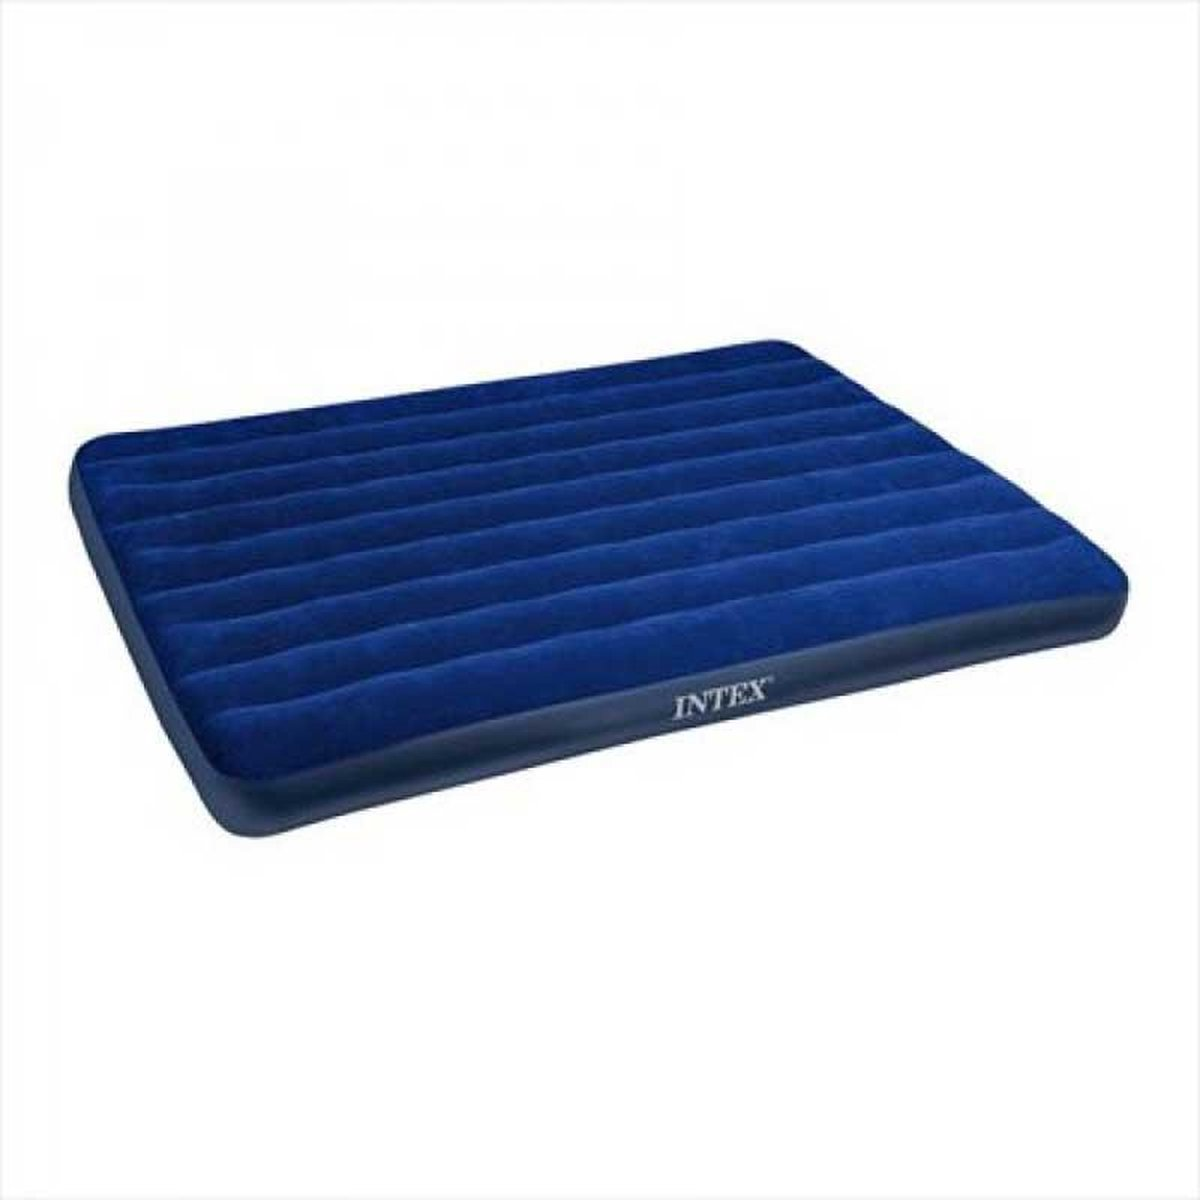 Intex King Luchtbed - 2-persoons - 203x183x22 cm